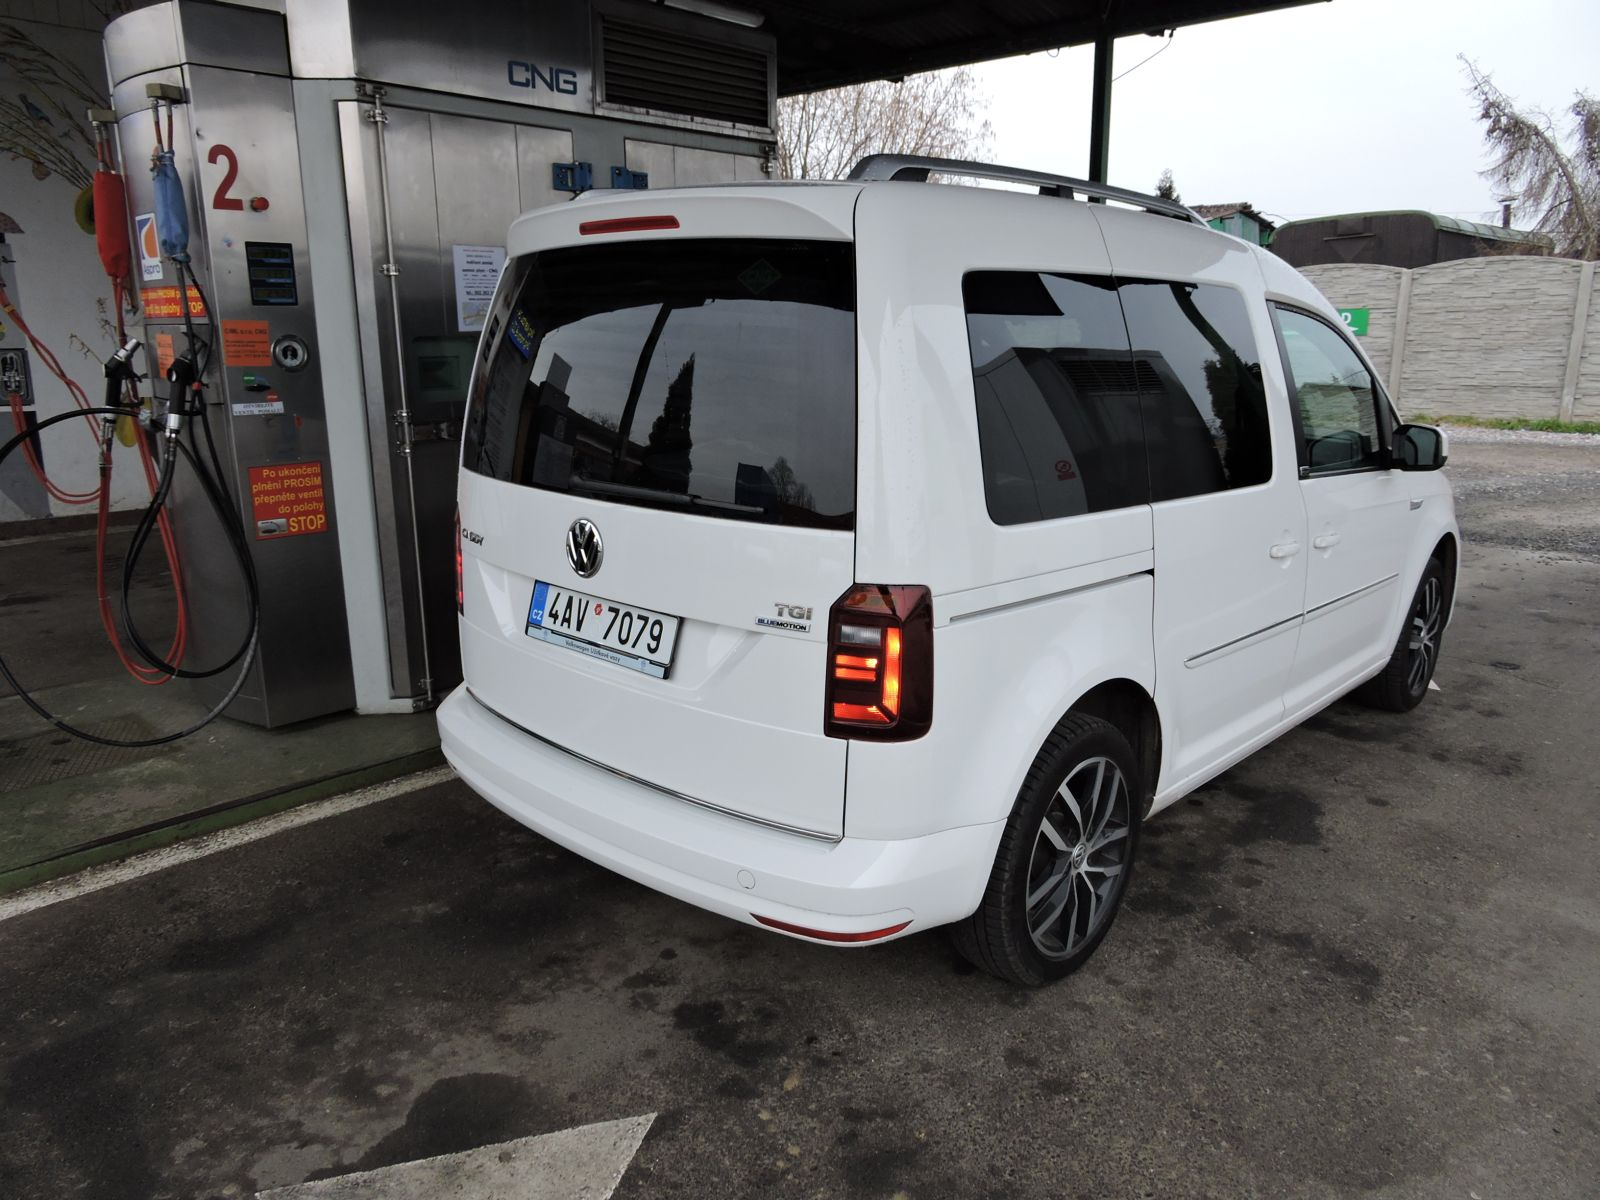 vw-caddy-cng-02.jpg